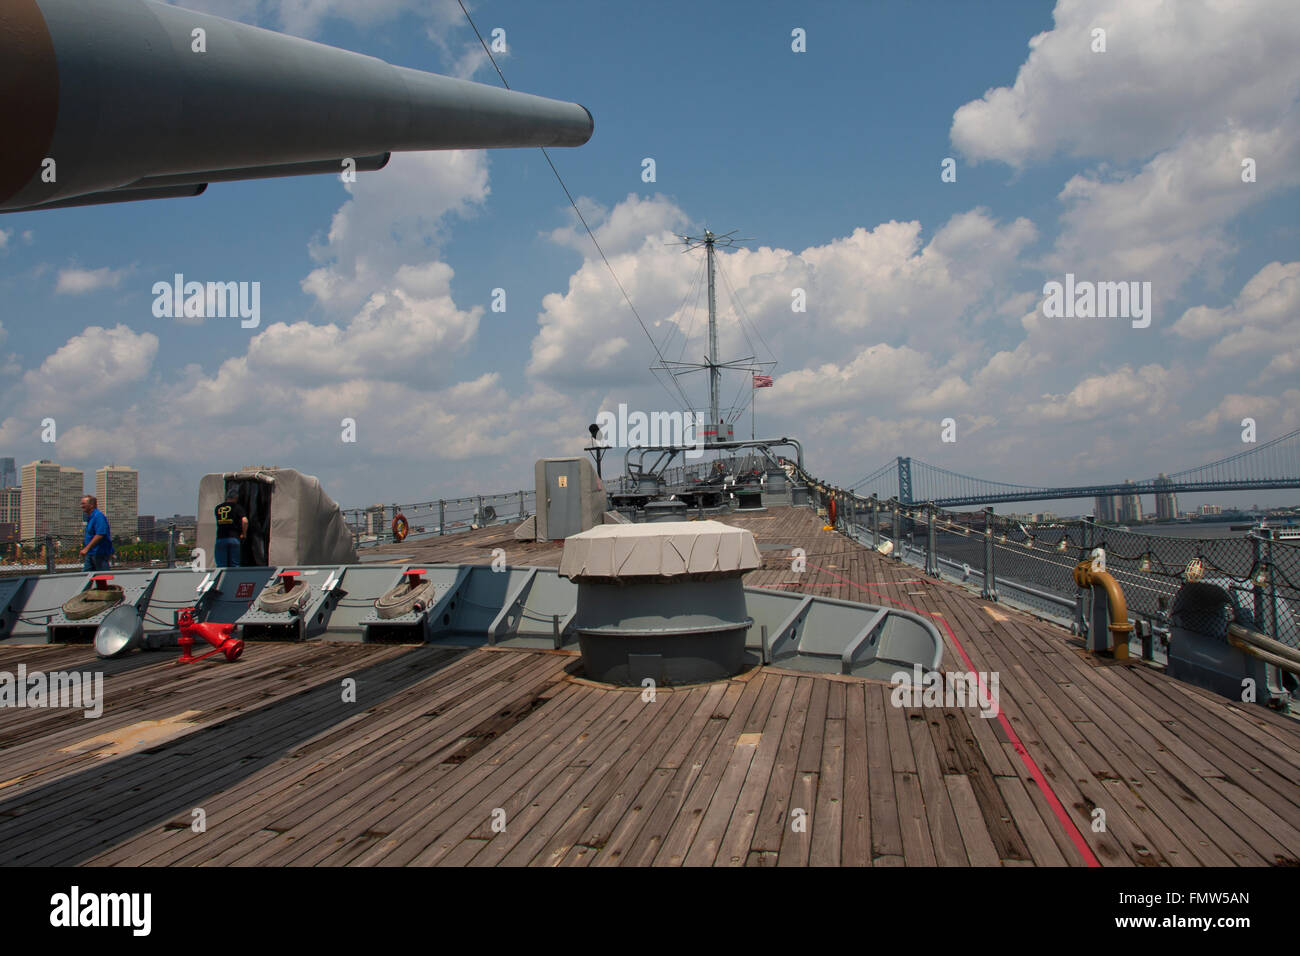 The battleship New Jersey, build in 1942 and stricken in 1999. This image shows the ship's 16' guns and - Stock Image